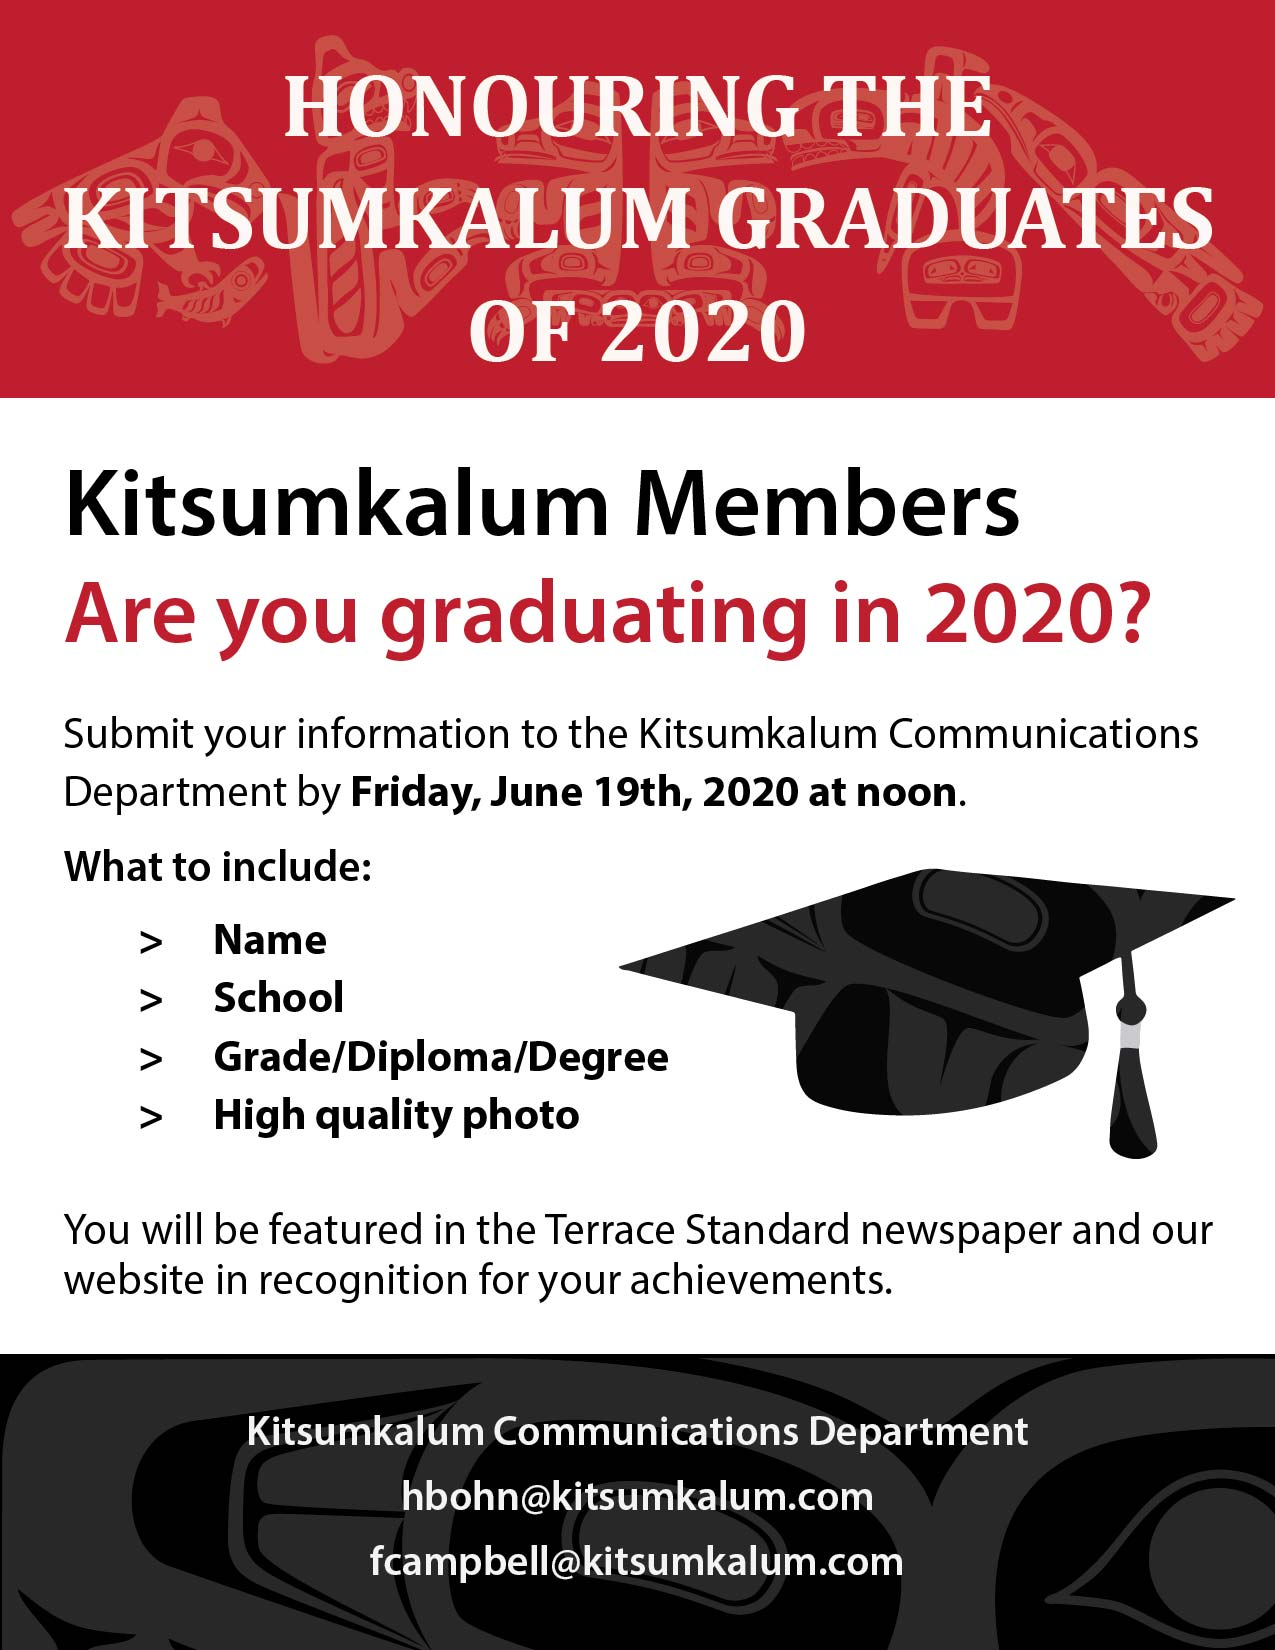 Send In Your Photo and Information for Grad 2020